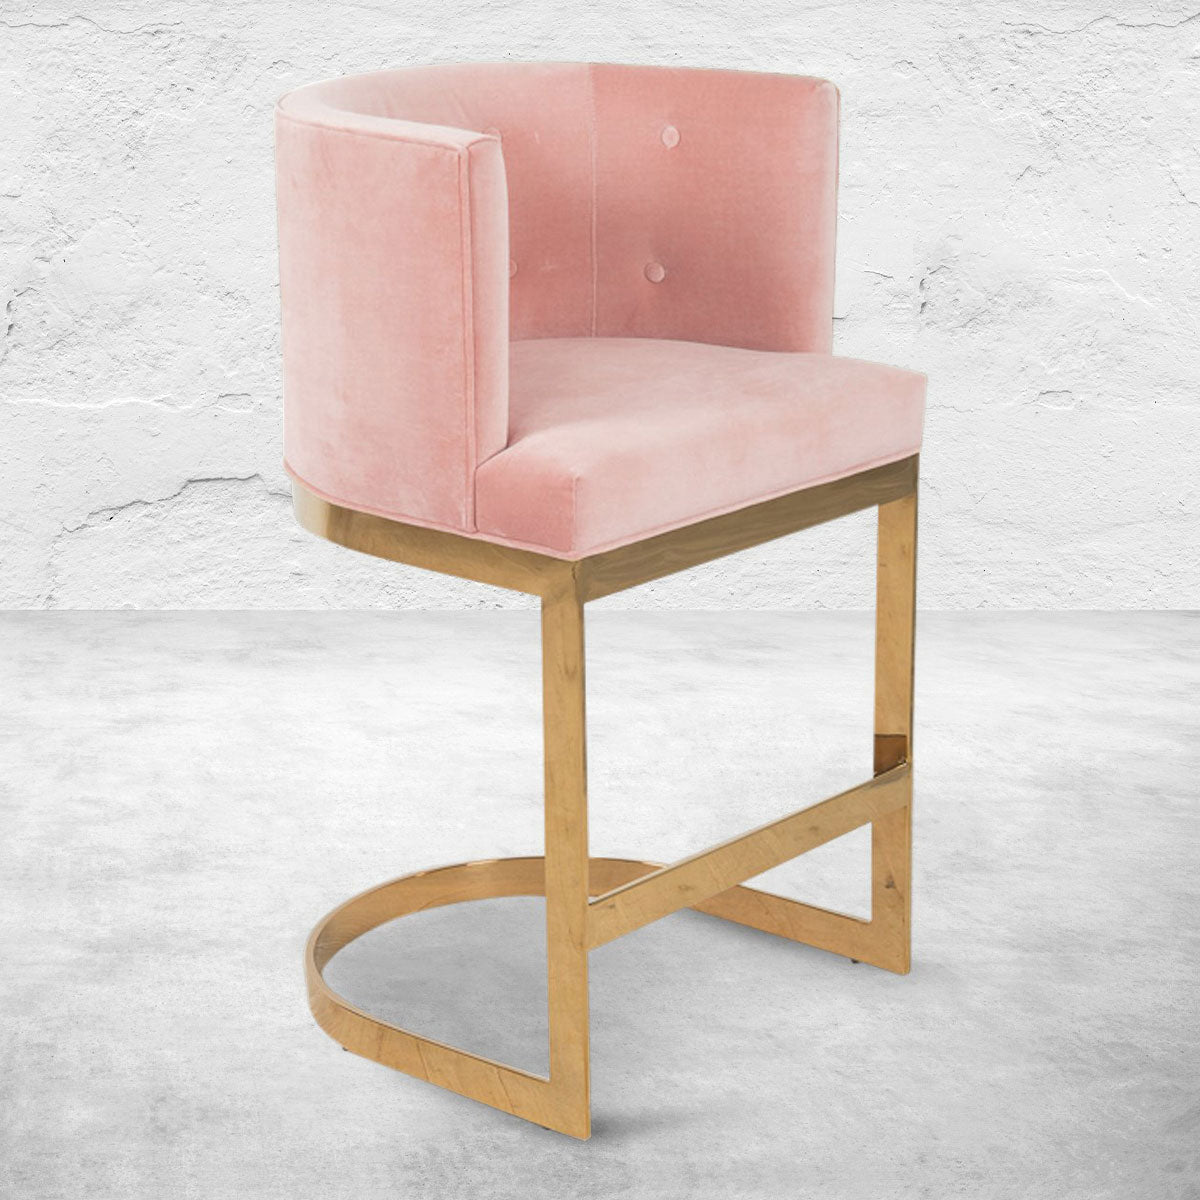 Art Deco style bar or counter stool with velvet blush upholstery, mid-rise back, button tufting and polished brass base.